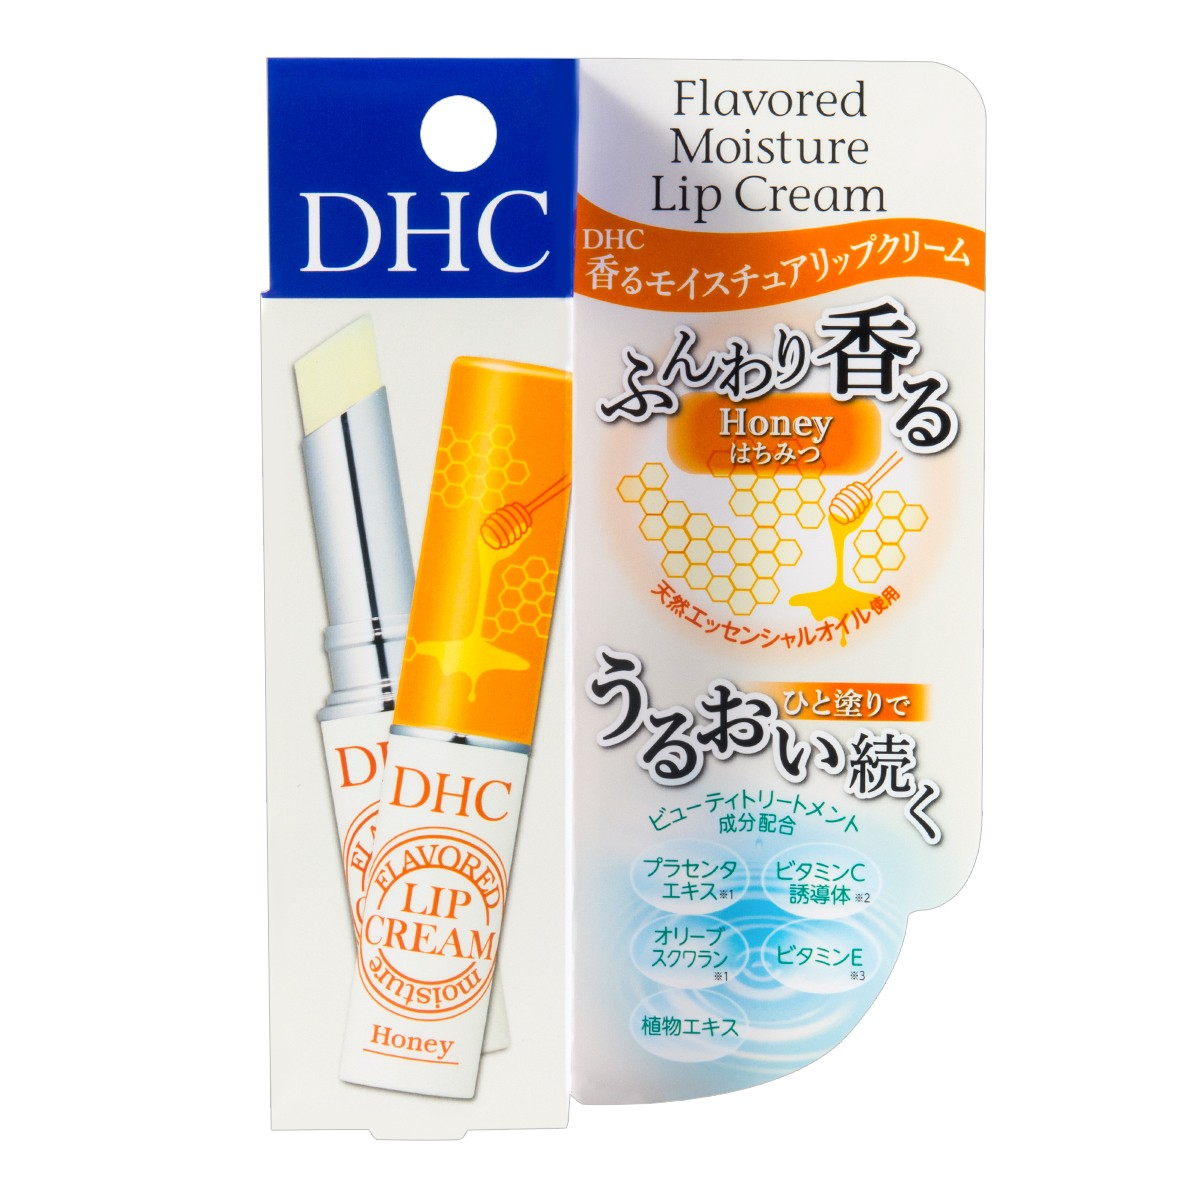 DHC flavored moisture lip cream honey 1.5g